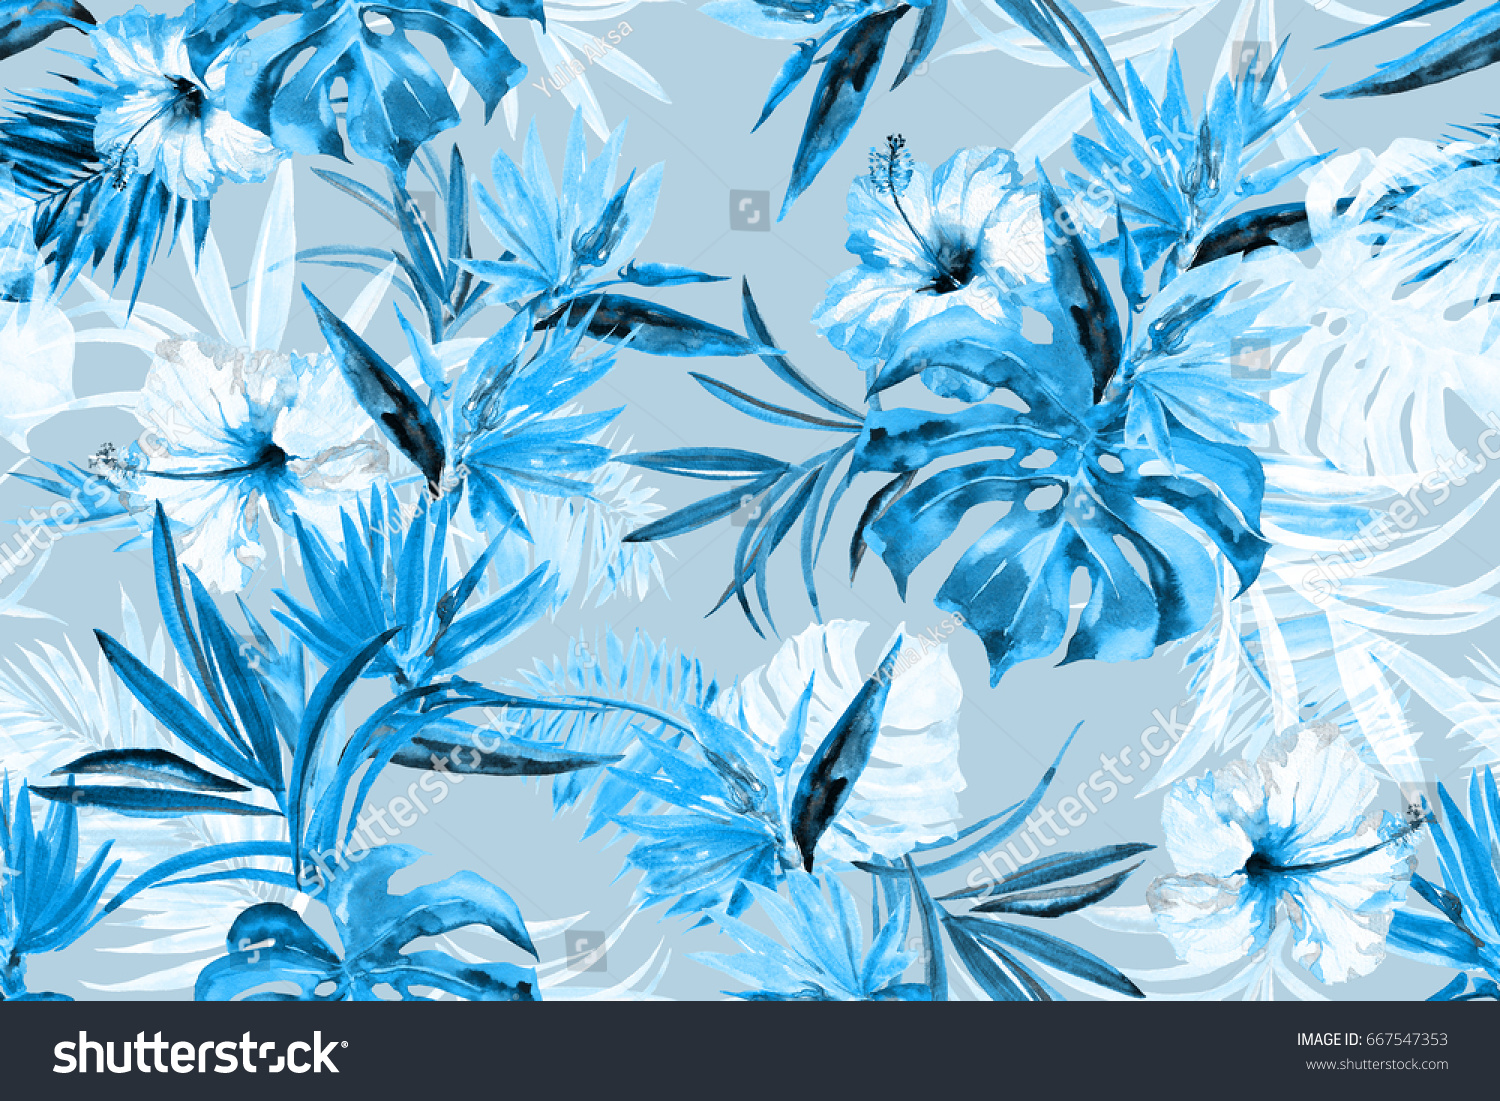 Floral blue mono color repeating tropical flowers blossom pattern watercolor painting background awesome flowers